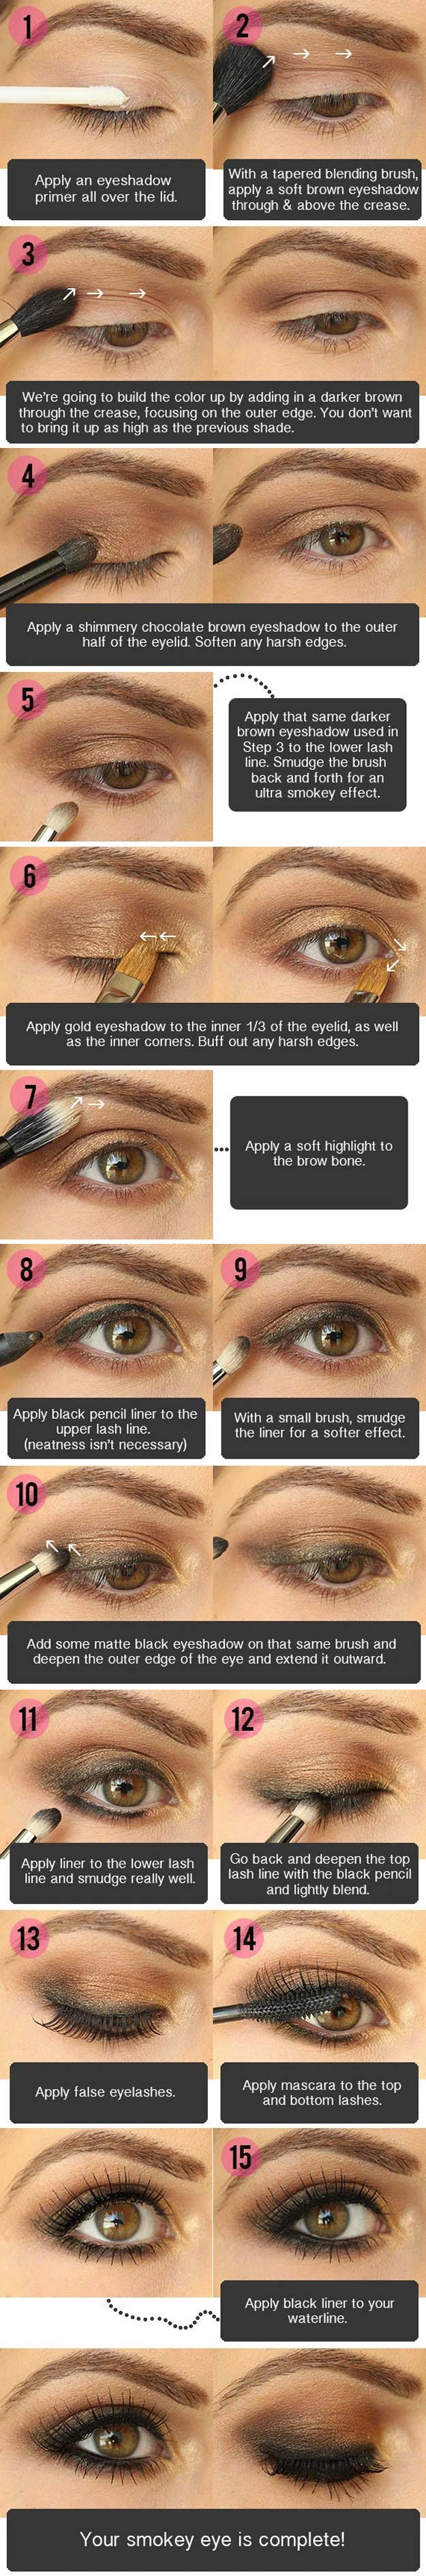 Best Eyeshadow Tutorials - Smokey Brown Eyeshadow - Easy Step by Step How To For Eye Shadow - Cool Makeup Tricks and Eye Makeup Tutorial With Instructions - Quick Ways to Do Smoky Eye, Natural Makeup, Looks for Day and Evening, Brown and Blue Eyes - Cool Ideas for Beginners and Teens http://diyprojectsforteens.com/best-eyeshadow-tutorials